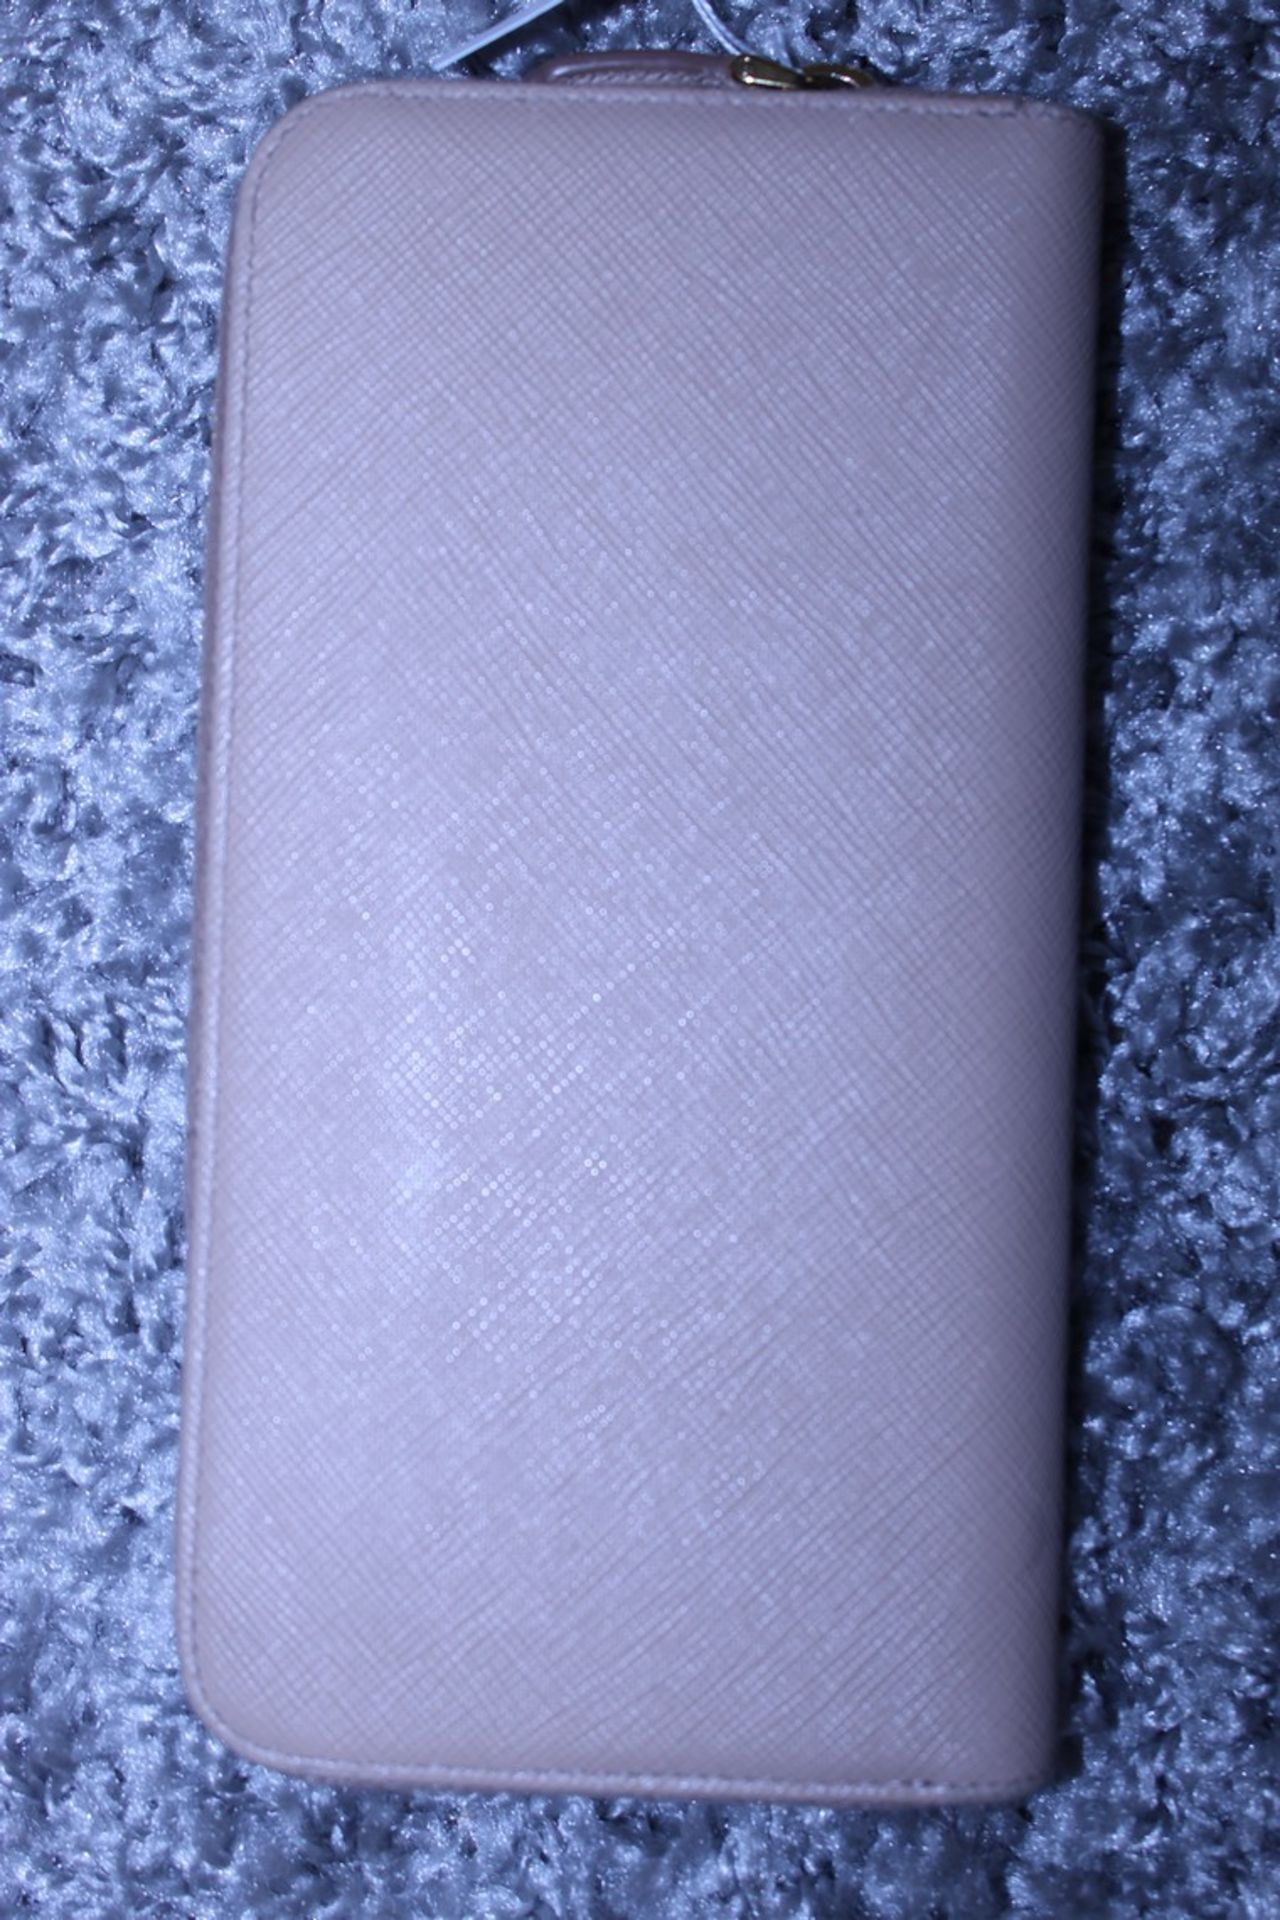 RRP £590 Prada Continental Wallet, Beige Saffiano Leather, 20X10Cm (Production Code 107D) - Image 2 of 5